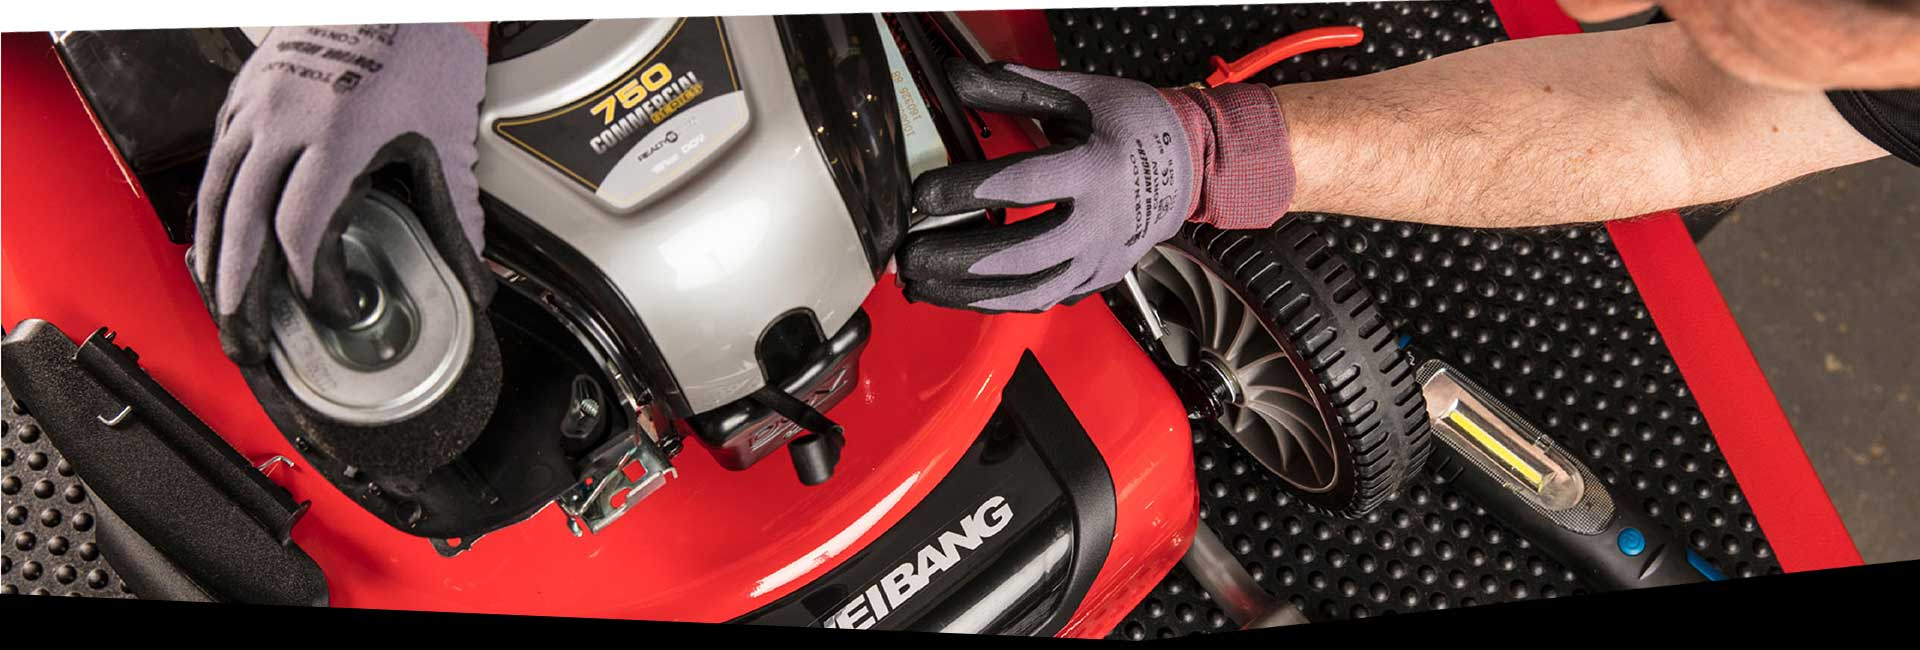 Garden Machinery servicing and repair